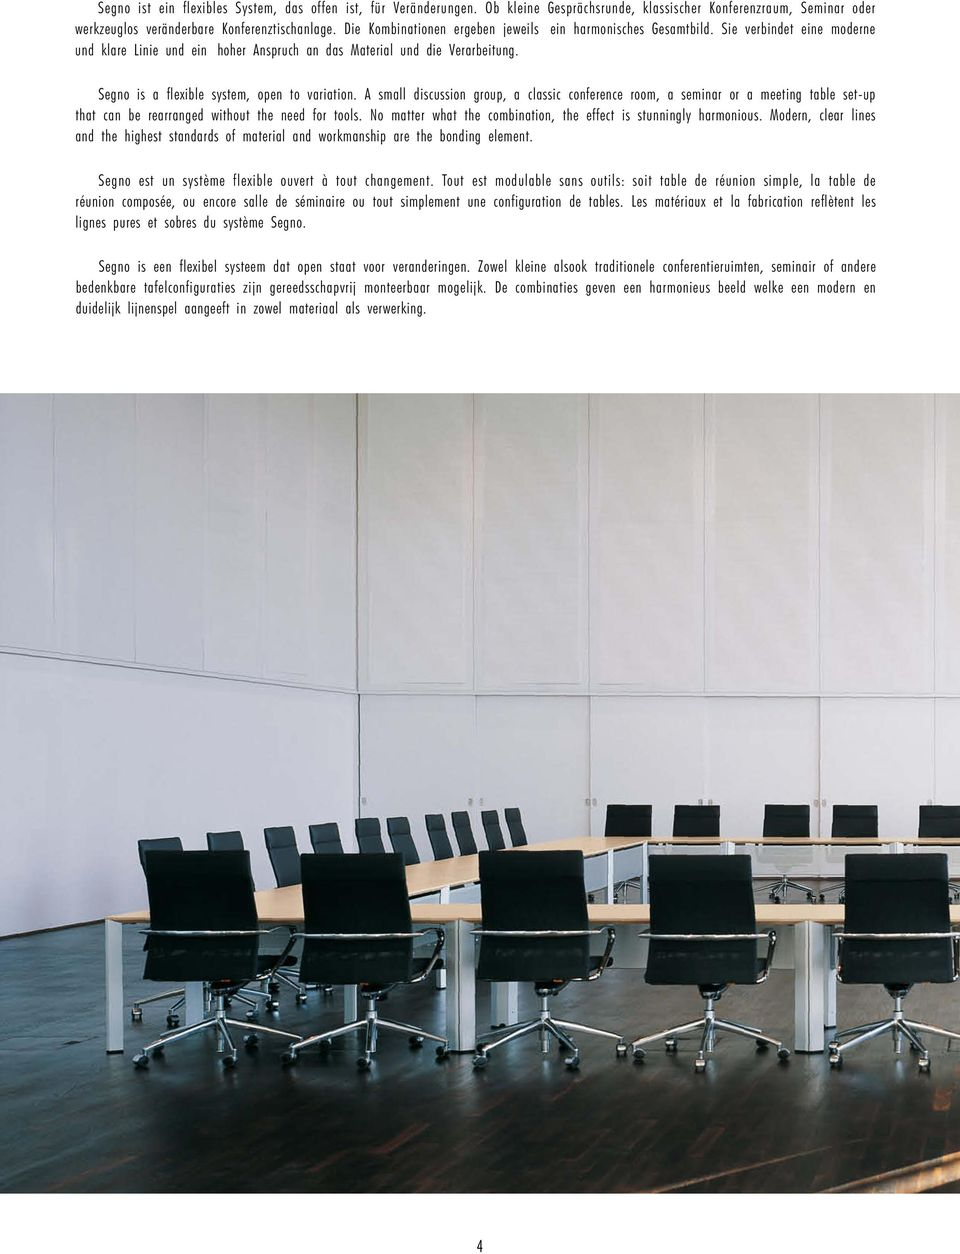 Segno is a flexible system, open to variation. A small discussion group, a classic conference room, a seminar or a meeting table set-up that can be rearranged without the need for tools.